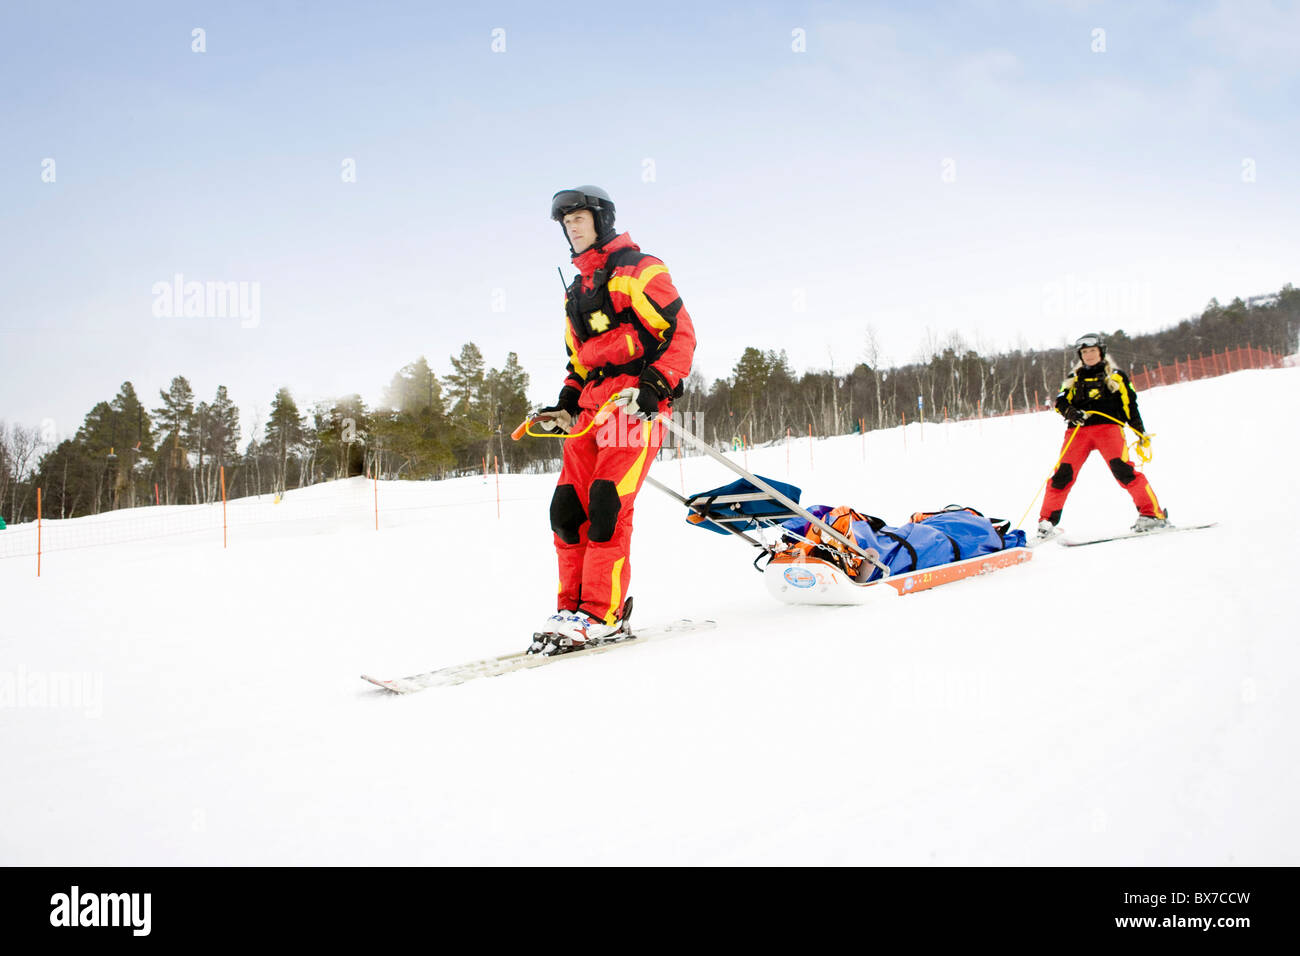 Two Rescuers in Piste - Stock Image